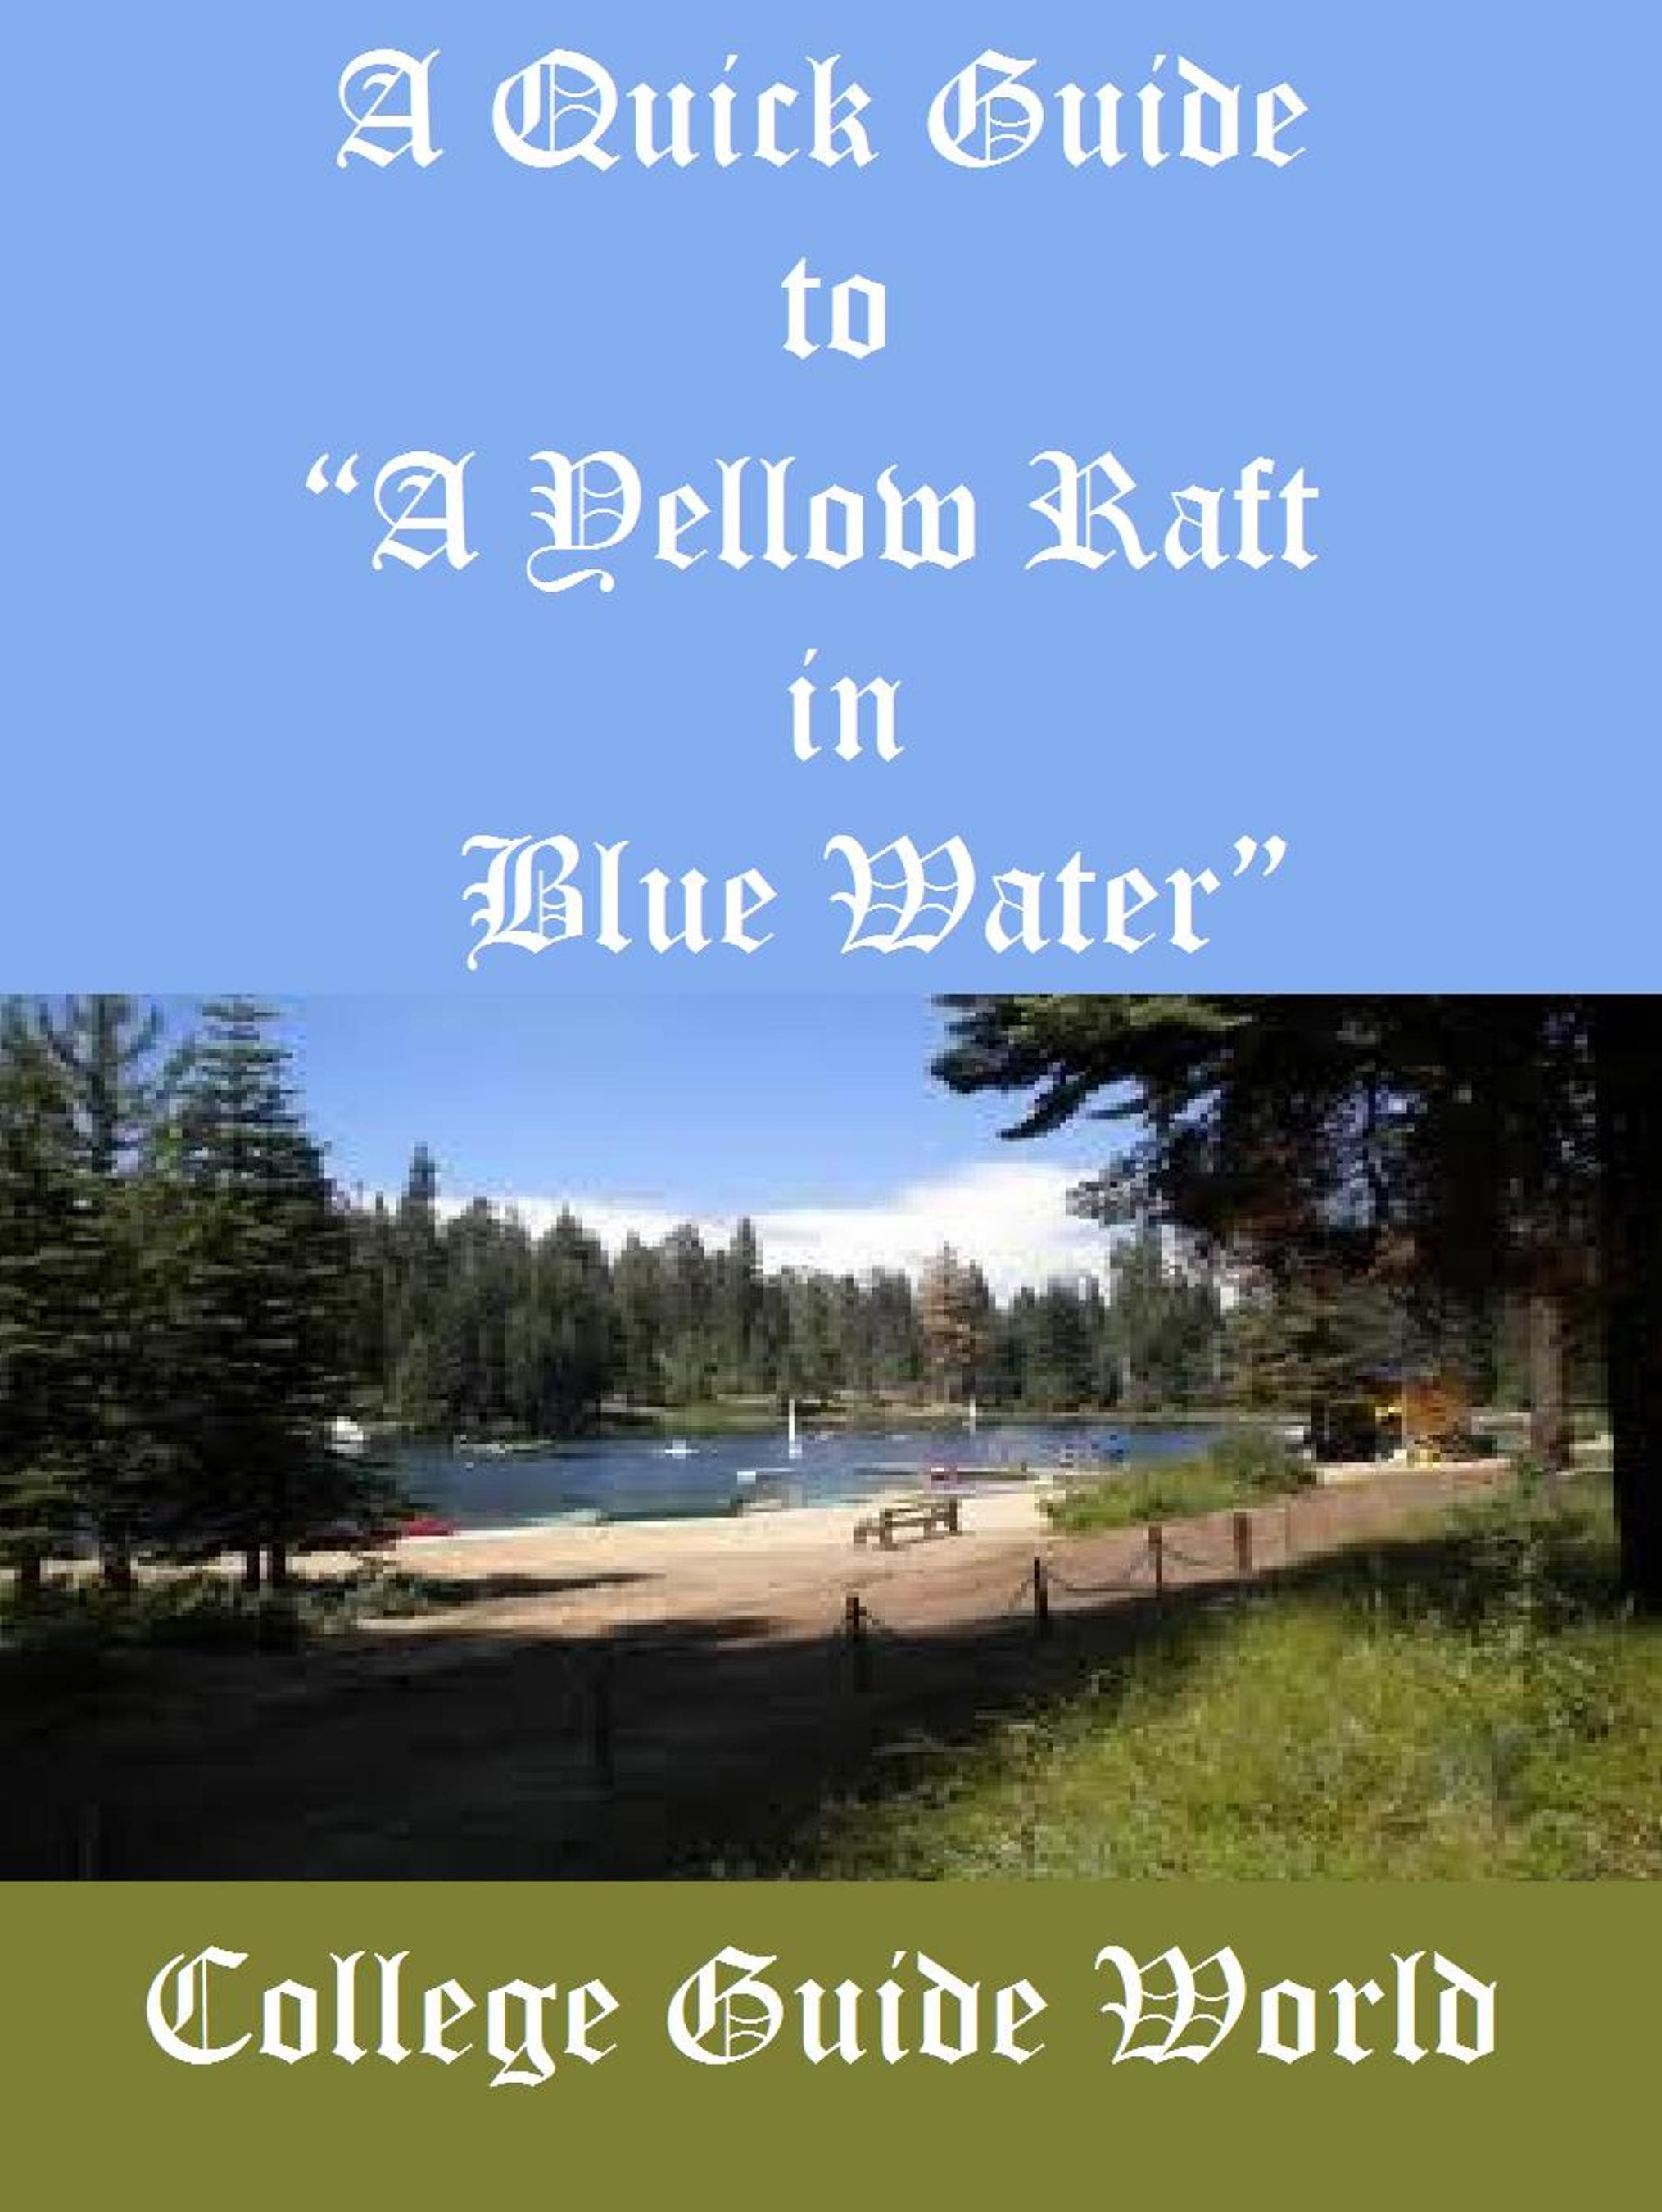 michael dorris s a yellow raft in Michael dorris writing styles in a yellow raft in blue water michael dorris this study guide consists of approximately 62 pages of chapter summaries, quotes, character analysis, themes, and more - everything you need to sharpen your knowledge of a yellow raft in blue water.